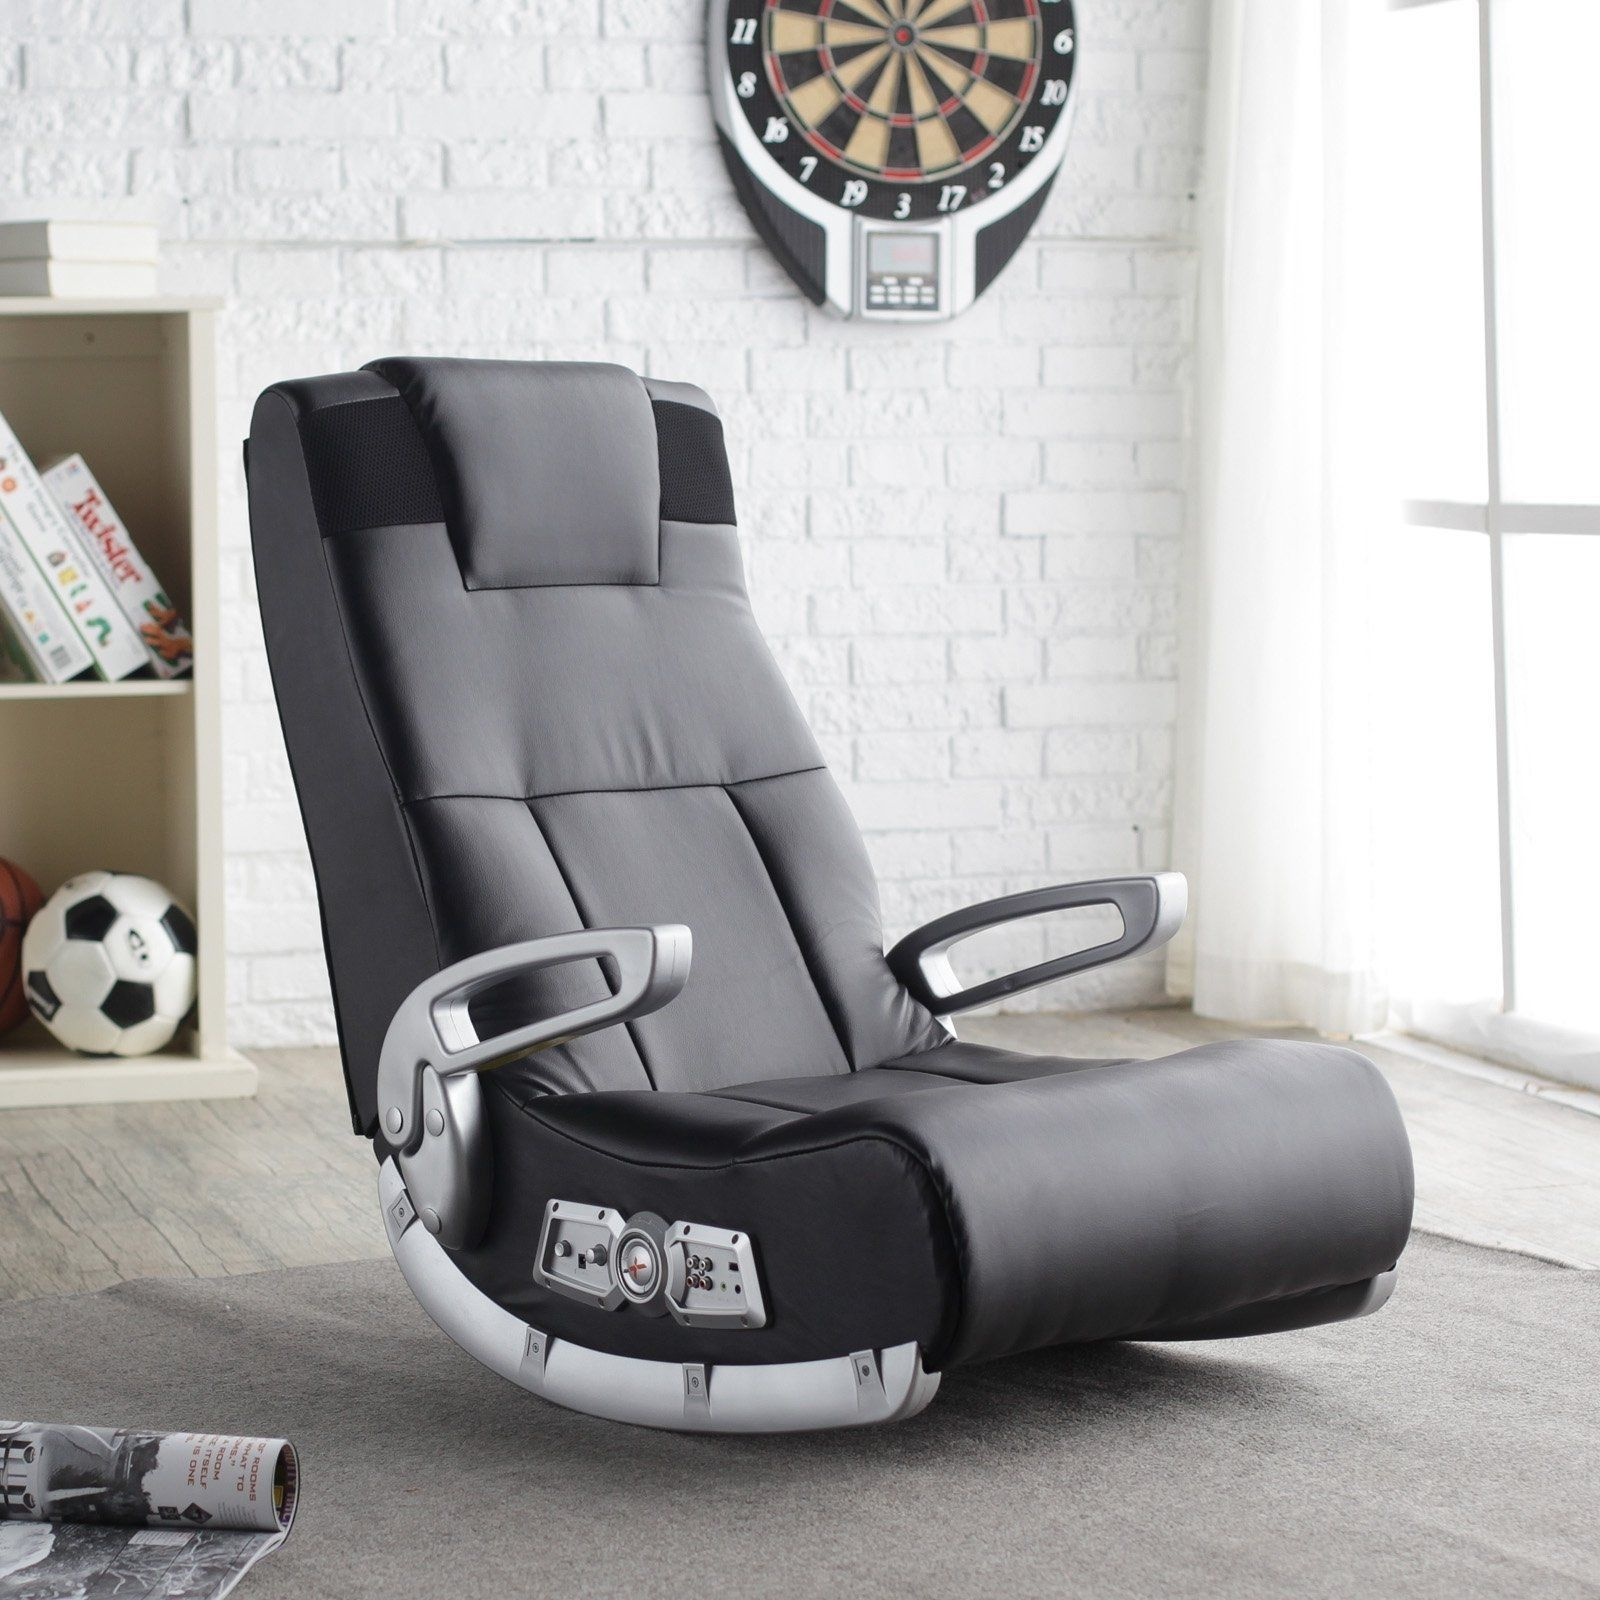 Video Game Chair X Rocker Speakers Wireless Gaming Seat